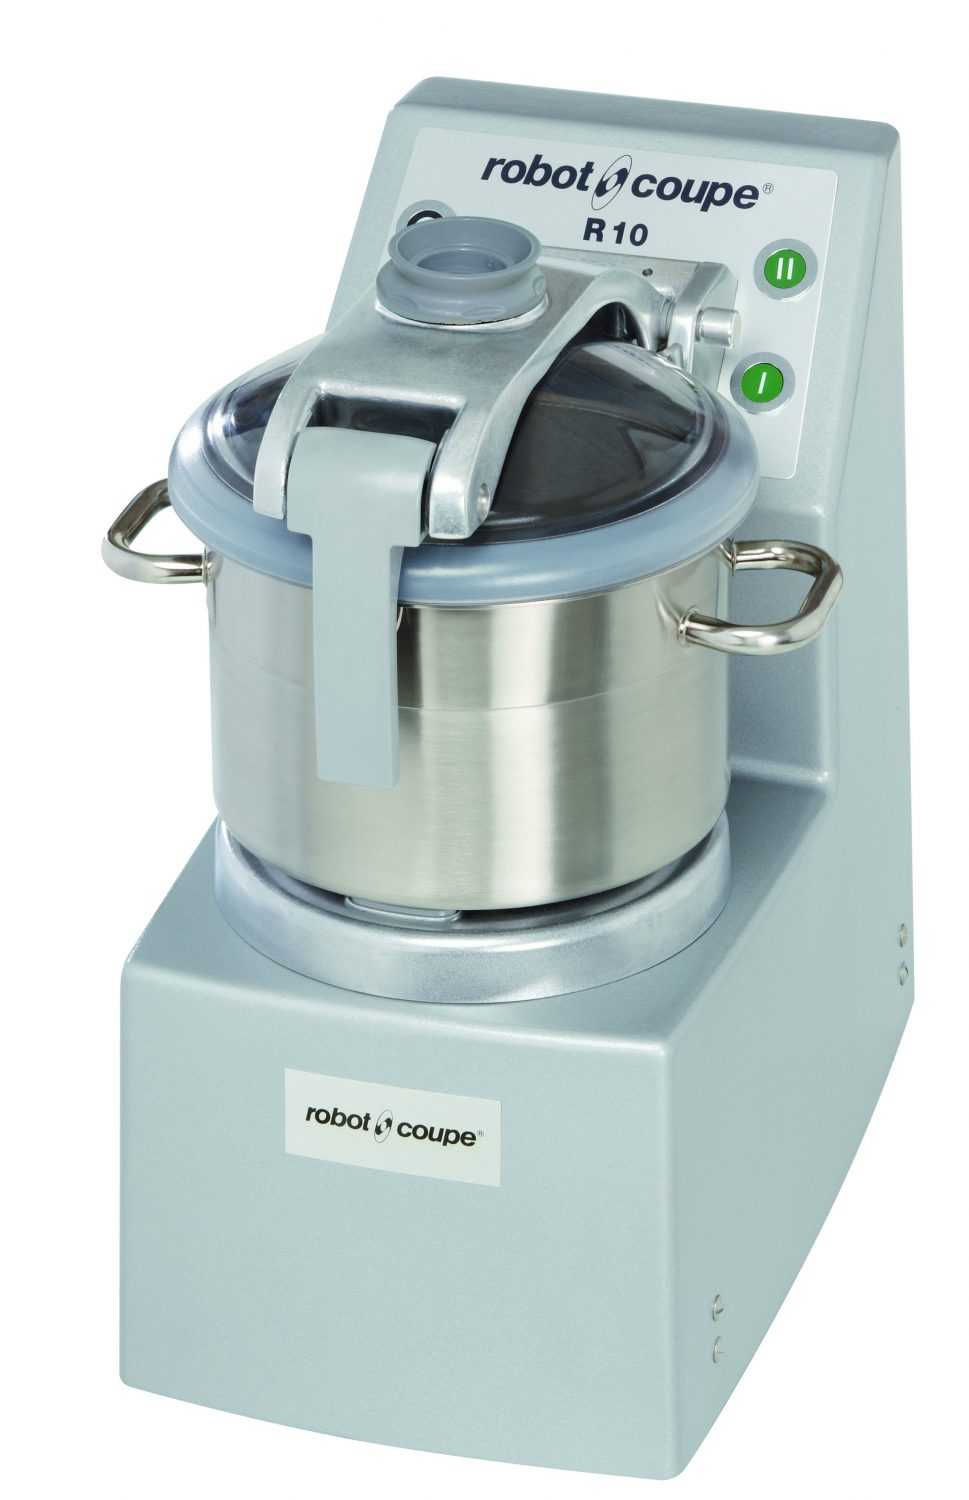 Robot Coupe R10 Cutter Mixer